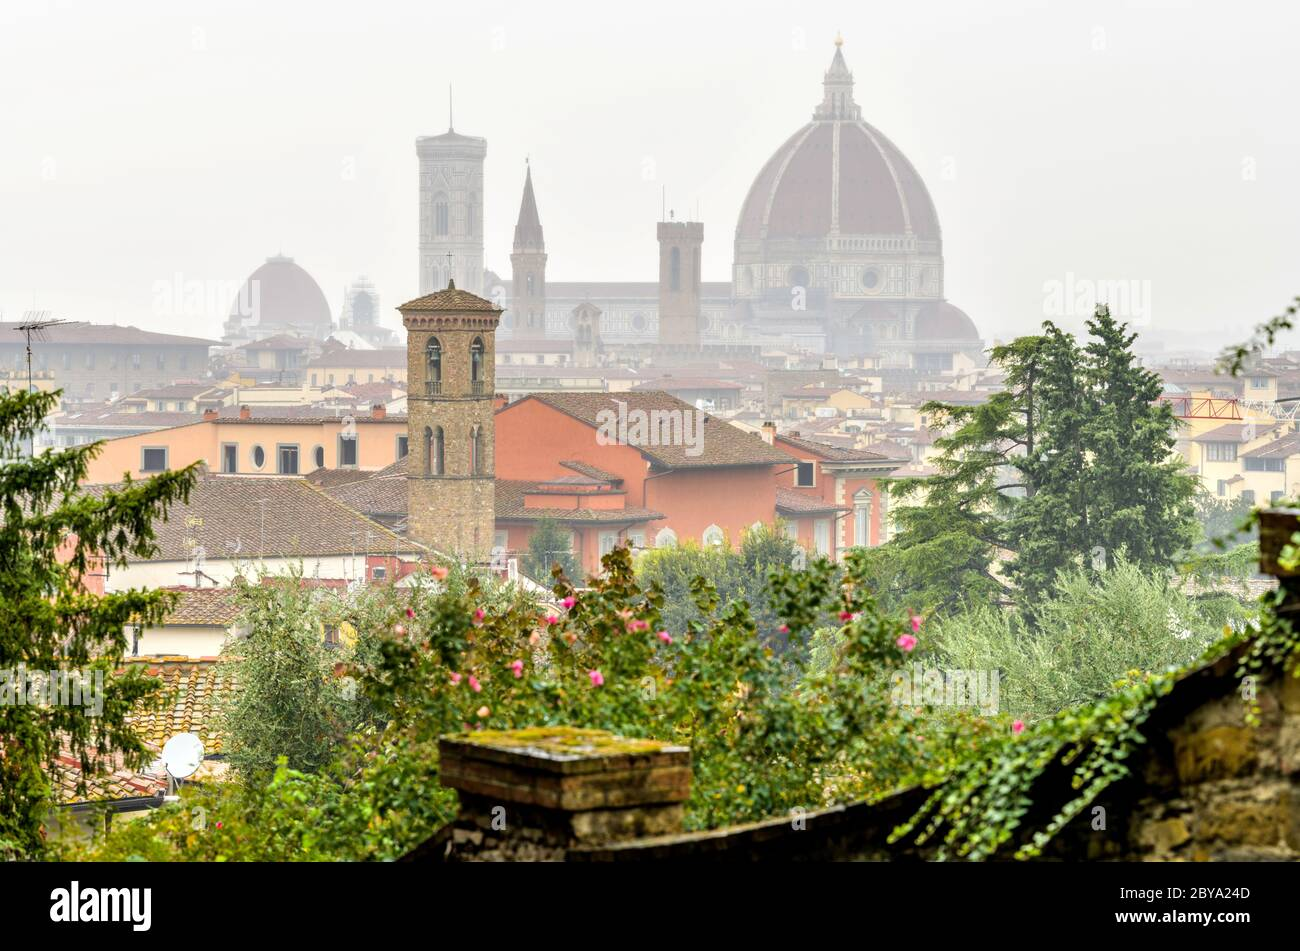 Florence in The Rain - A rainy and foggy Autumn day view of the skyline of Florence Cathedral in the historical Old Town of Florence. Tuscany, Italy. Stock Photo